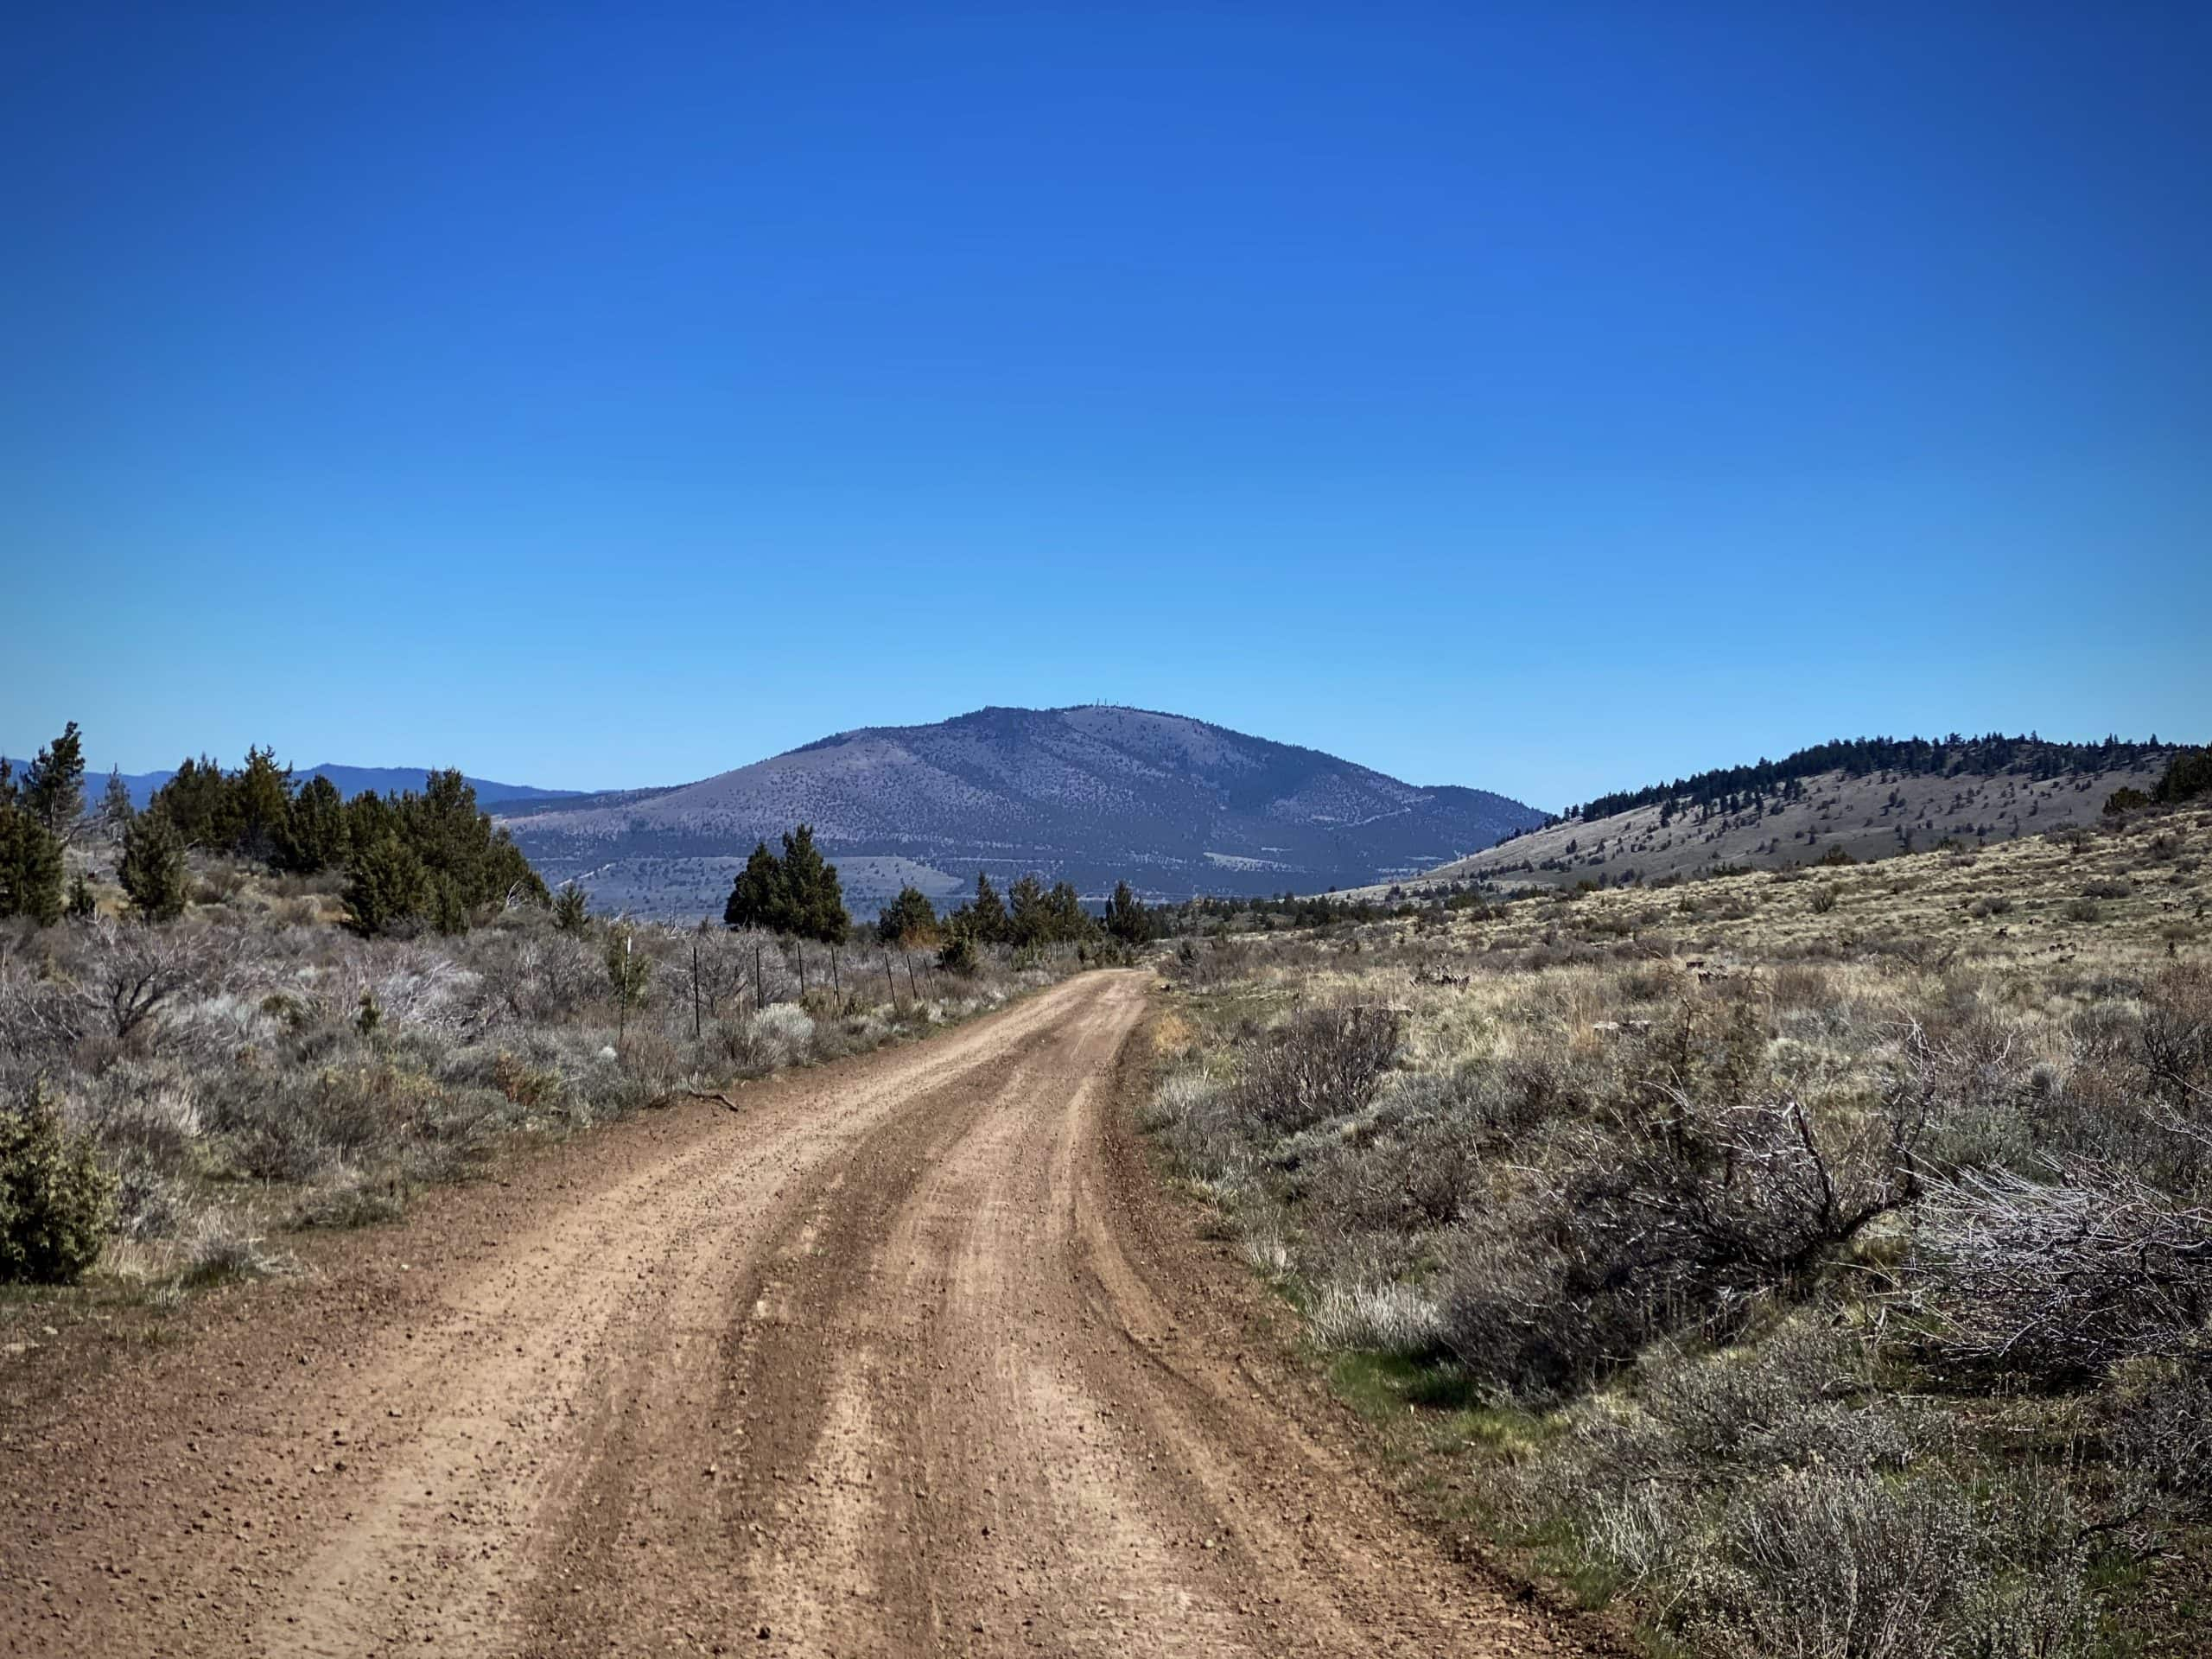 Grizzly Mountain in the distance. Near Prineville, OR.